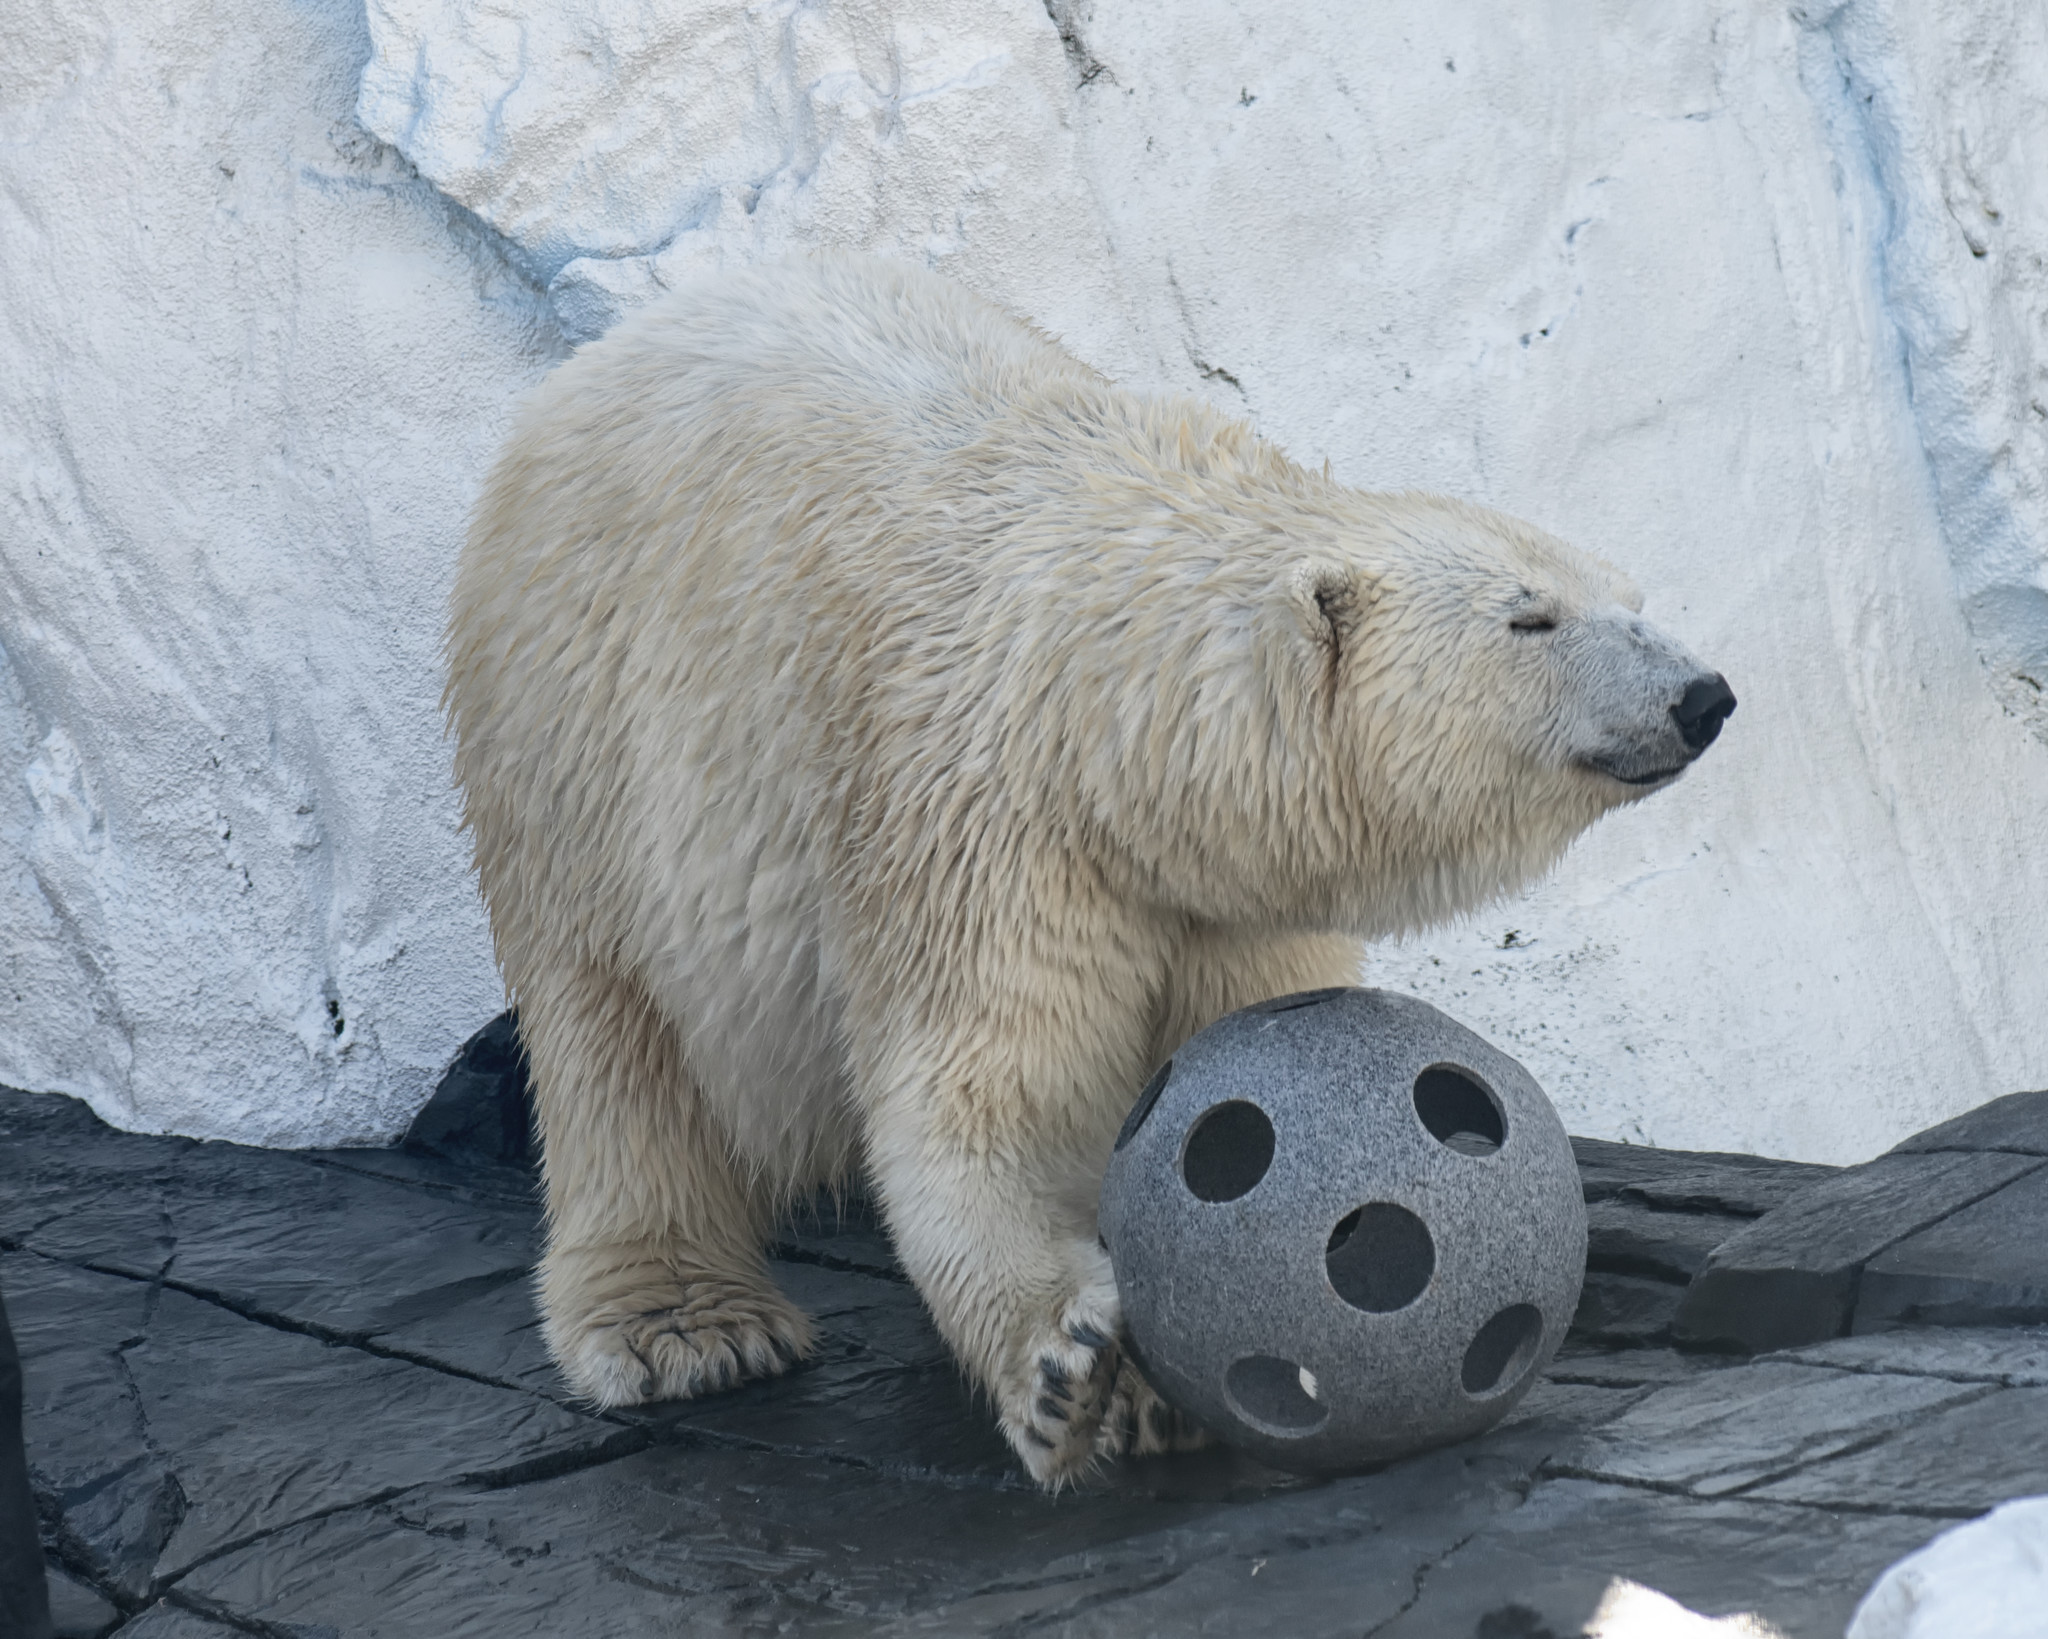 first killer whales now polar bears peta goes after seaworld